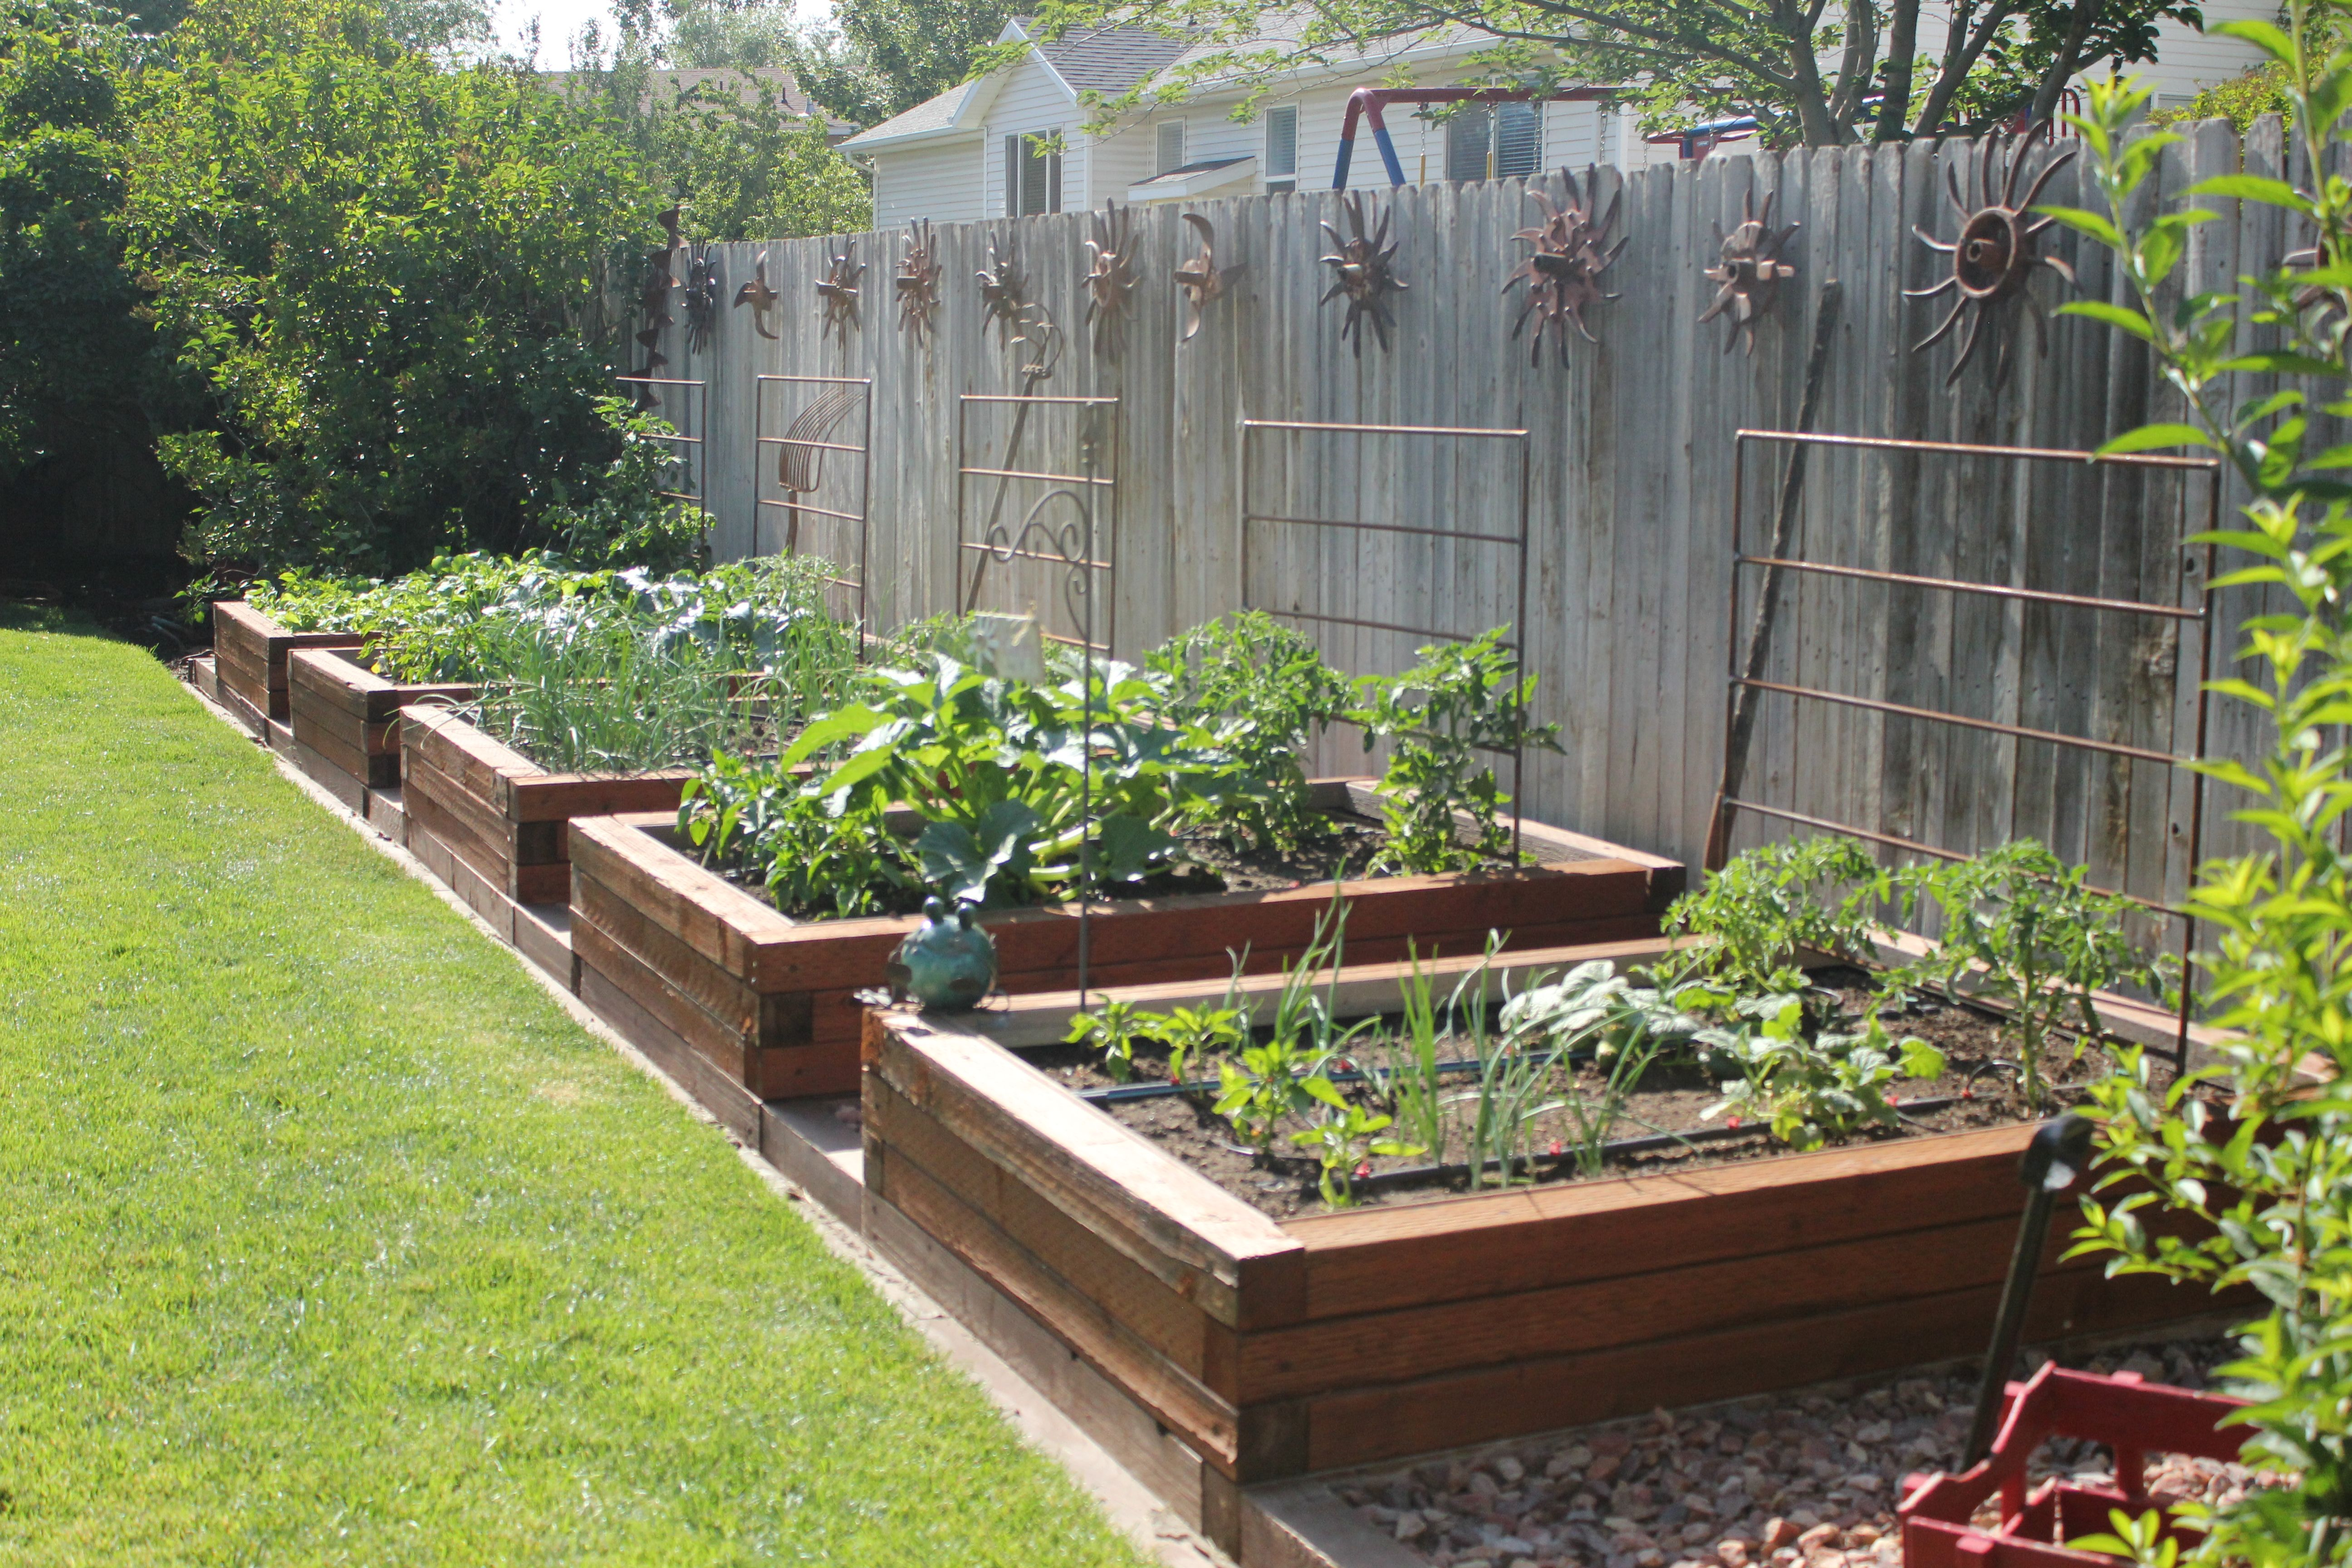 Beautiful Raised Beds for the vegetable garden. (From the